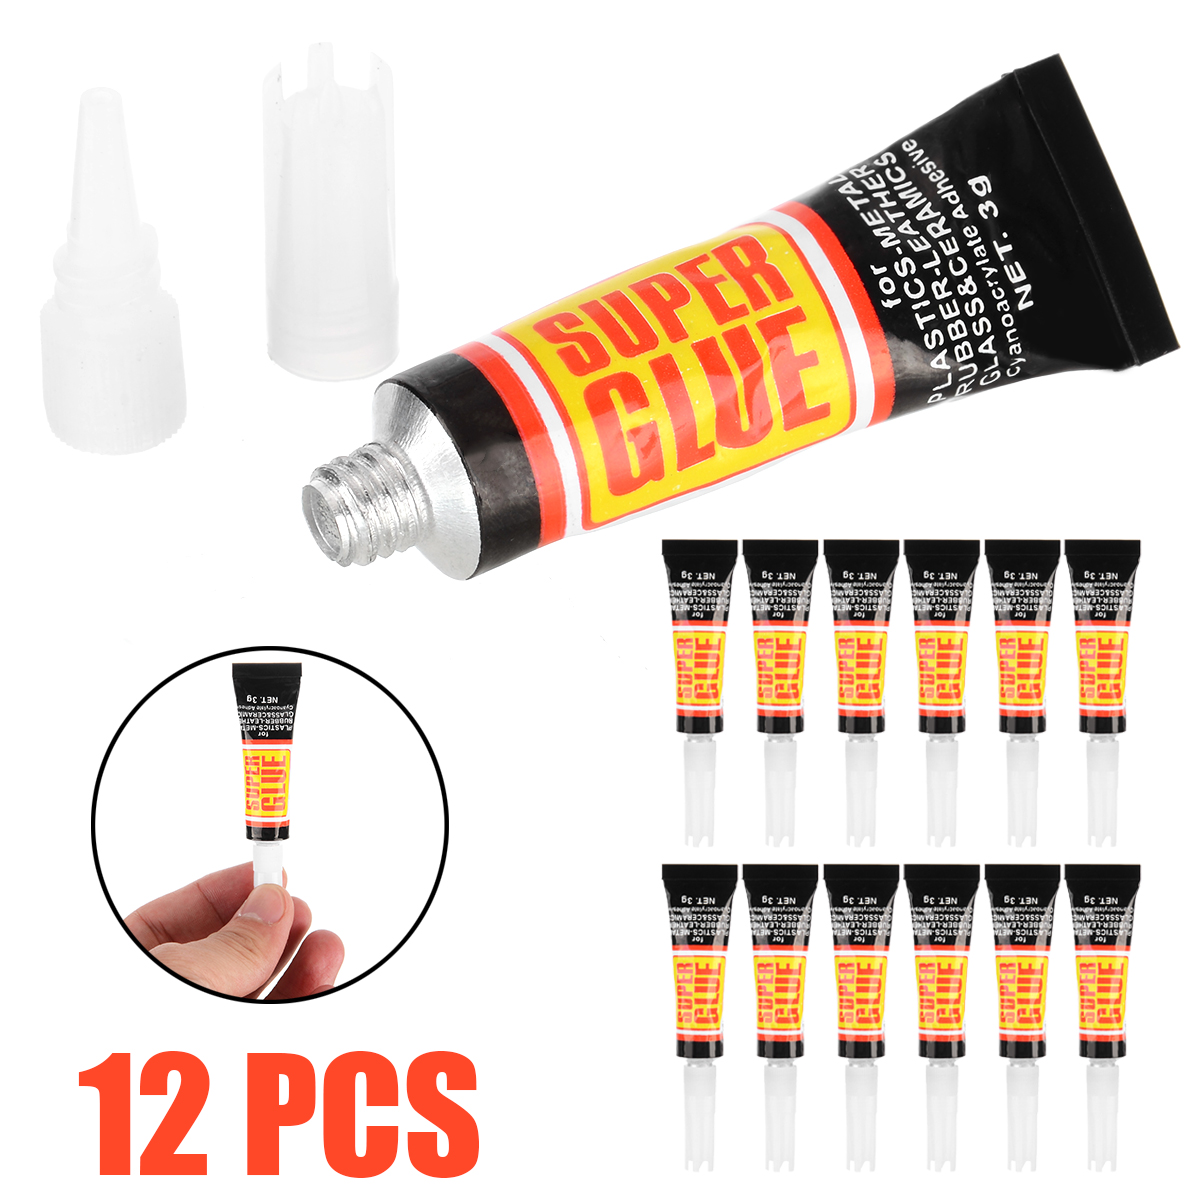 12pcs 3g Quick Dry Super Glue Mini Liquid Gel Tube Super Glue For DIY Metal Glass Plastic Handmade Repair Strong Adhesive Tool